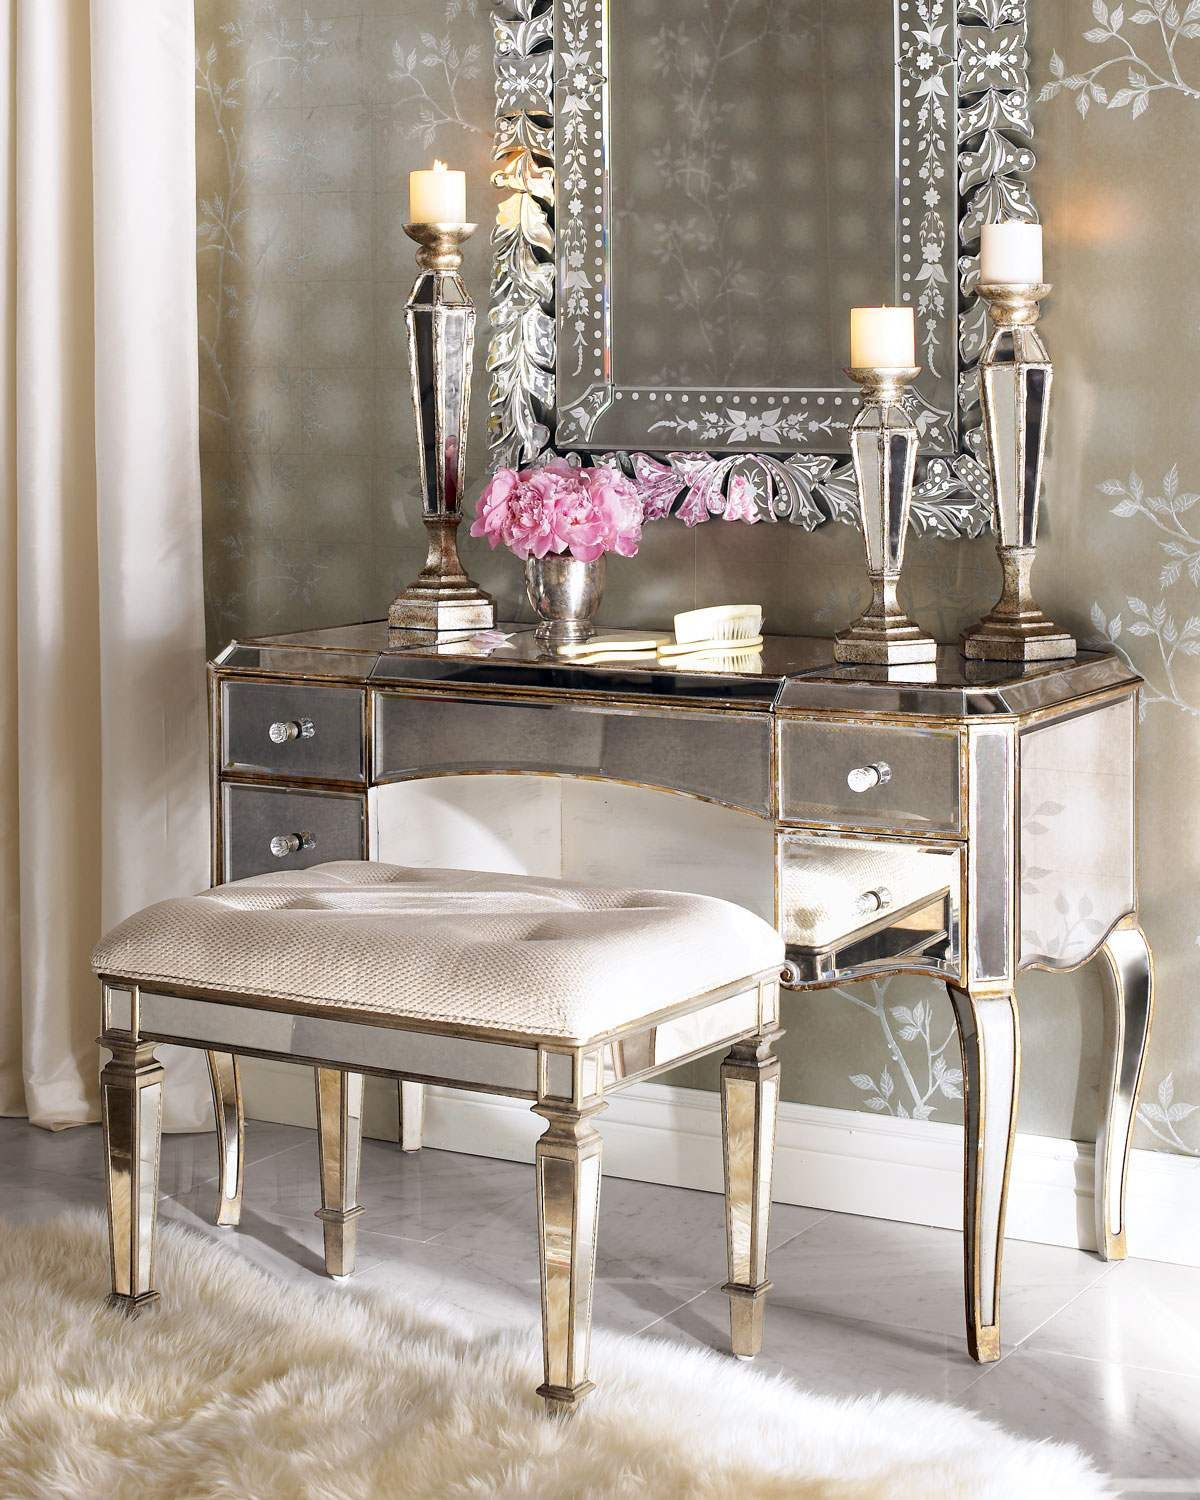 Mirrored Furniture Photos | For the Home | Pinterest | Mirror ...